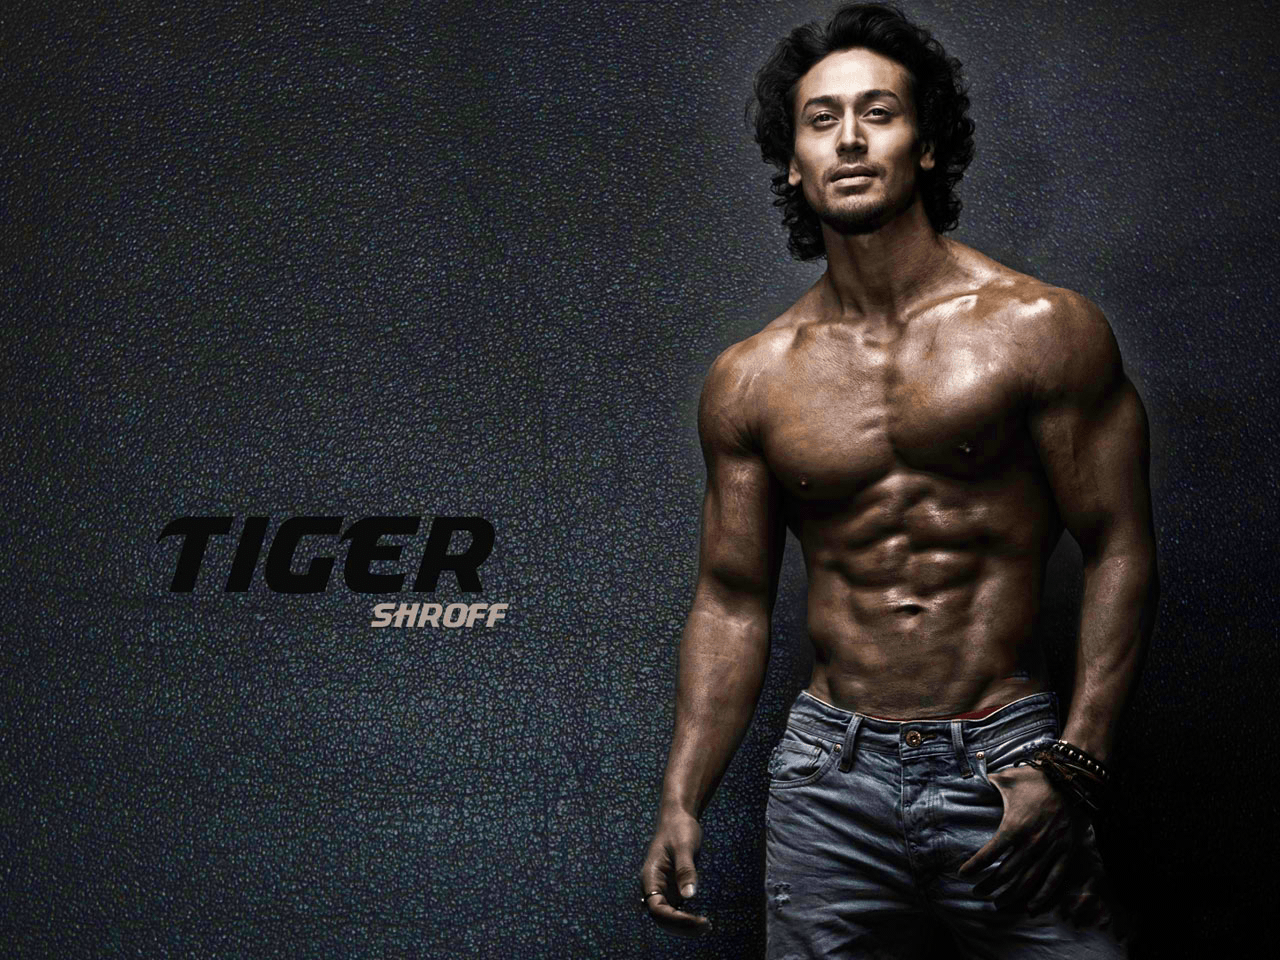 Pin By Imran Alk On Exercises Tiger Shroff Tiger Shroff Body